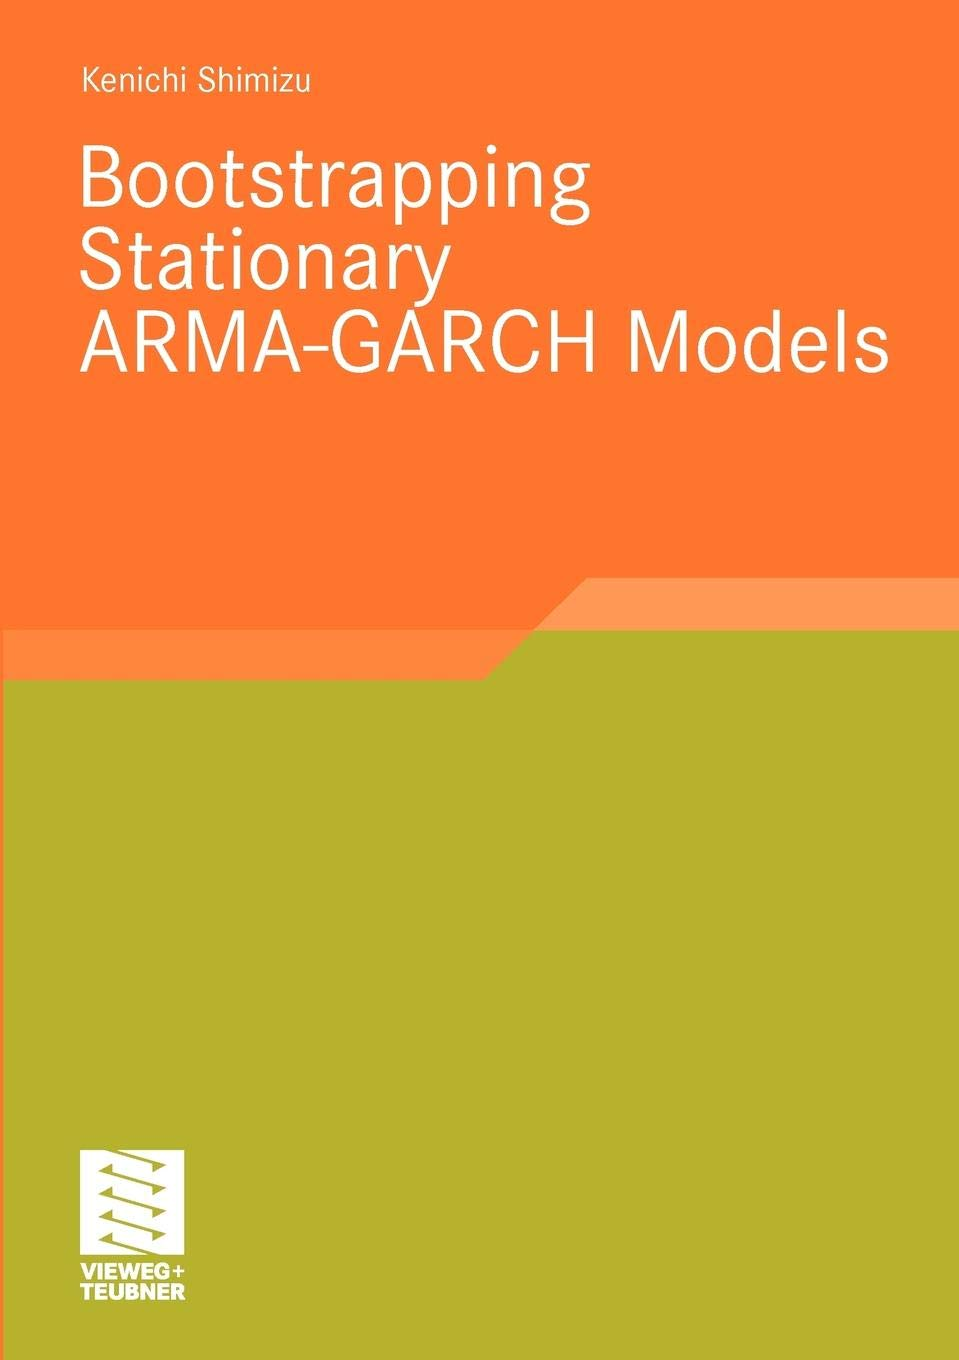 Bootstrapping Stationary ARMA-GARCH Models